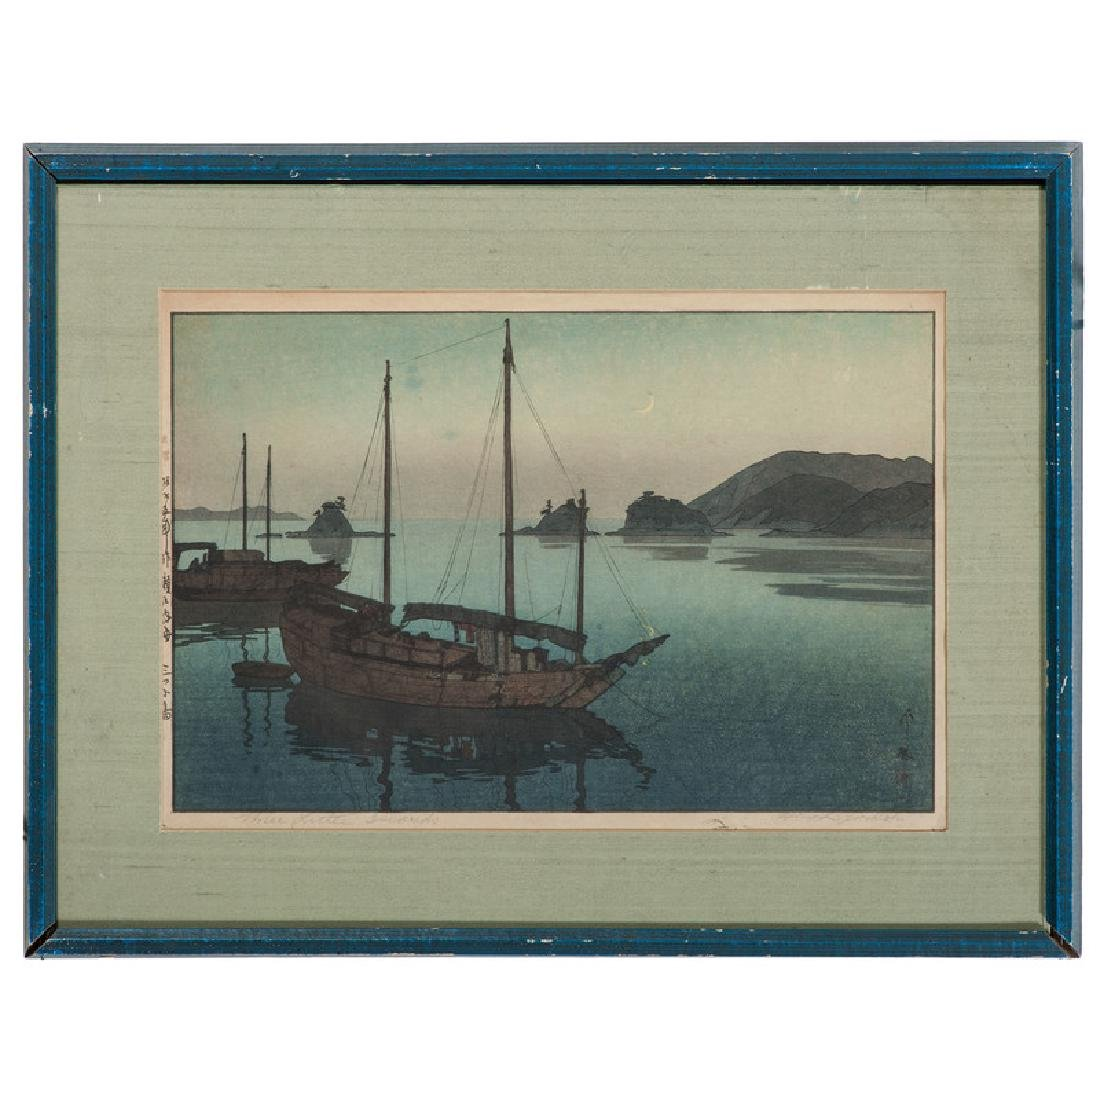 Three Little Islands Woodblock by Hiroshi Yoshida